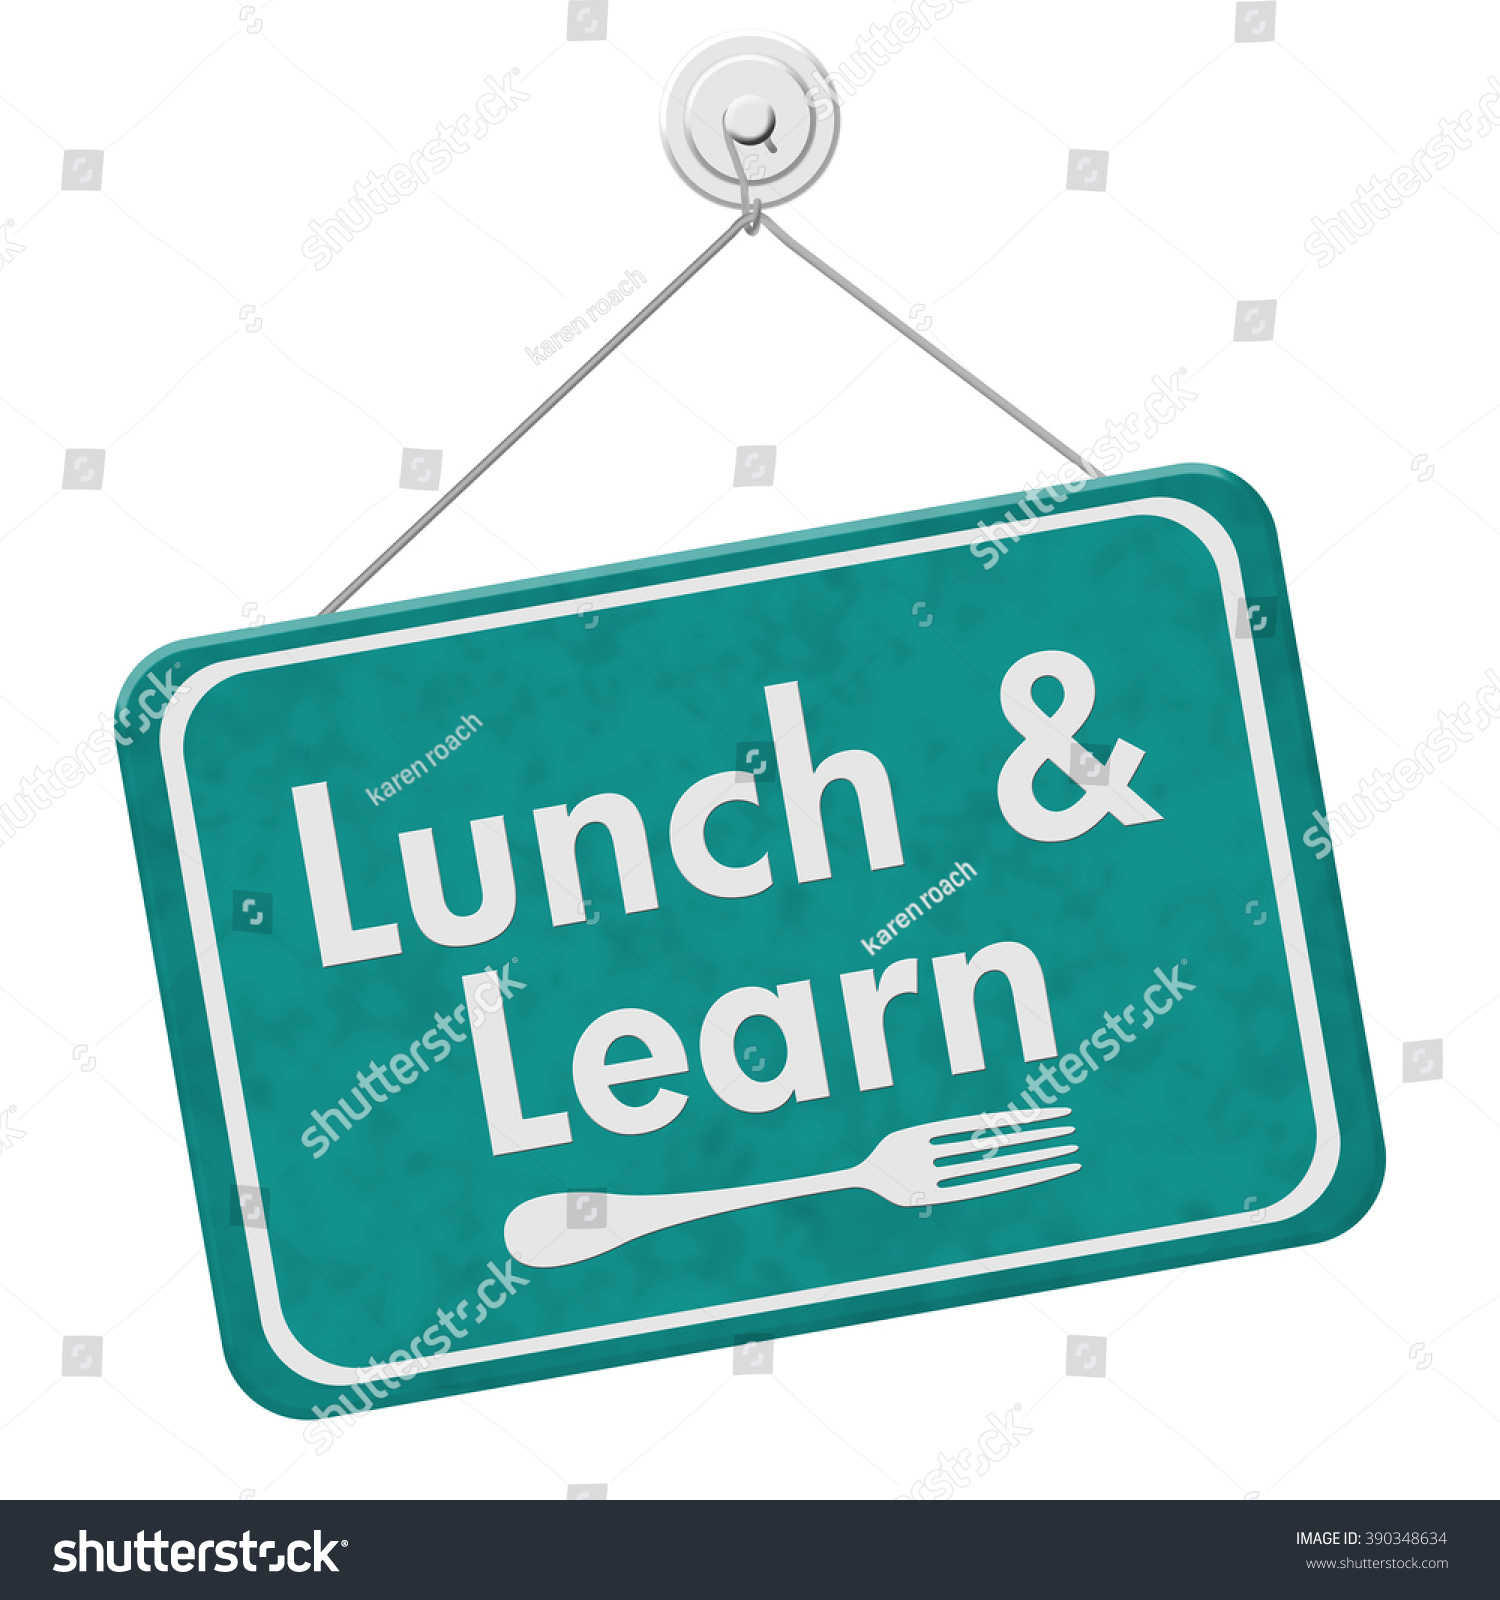 Lunch Learn Sign Teal Hanging Sign Stock Illustration 390348634